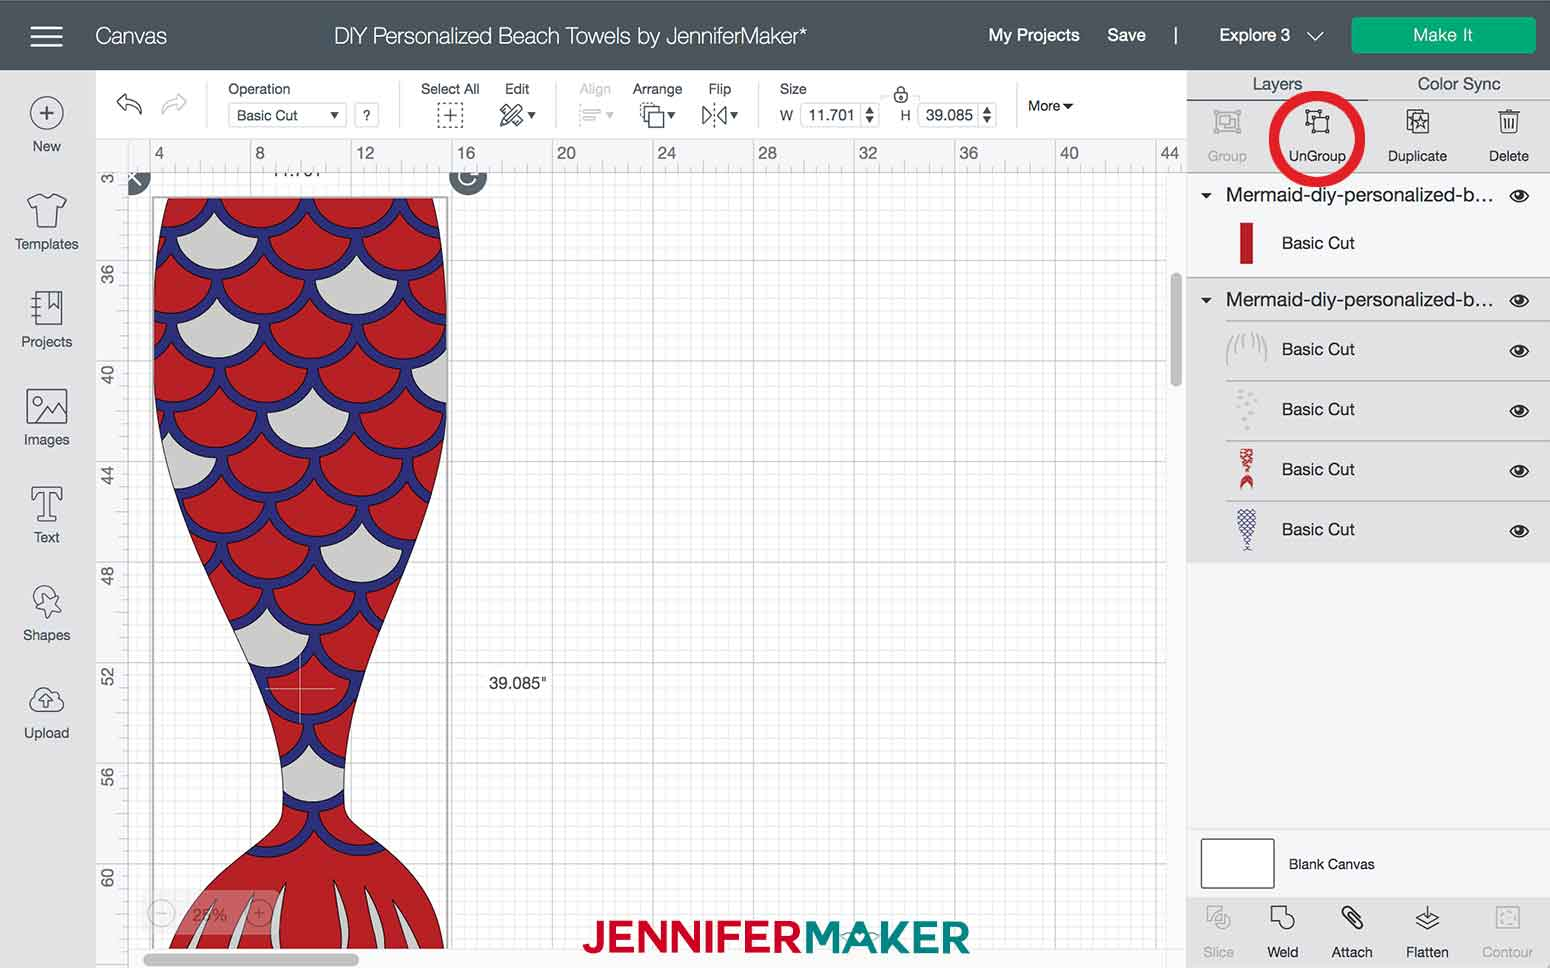 Ungrouping layers of the Mermaid DIY Personalized Beach Towels